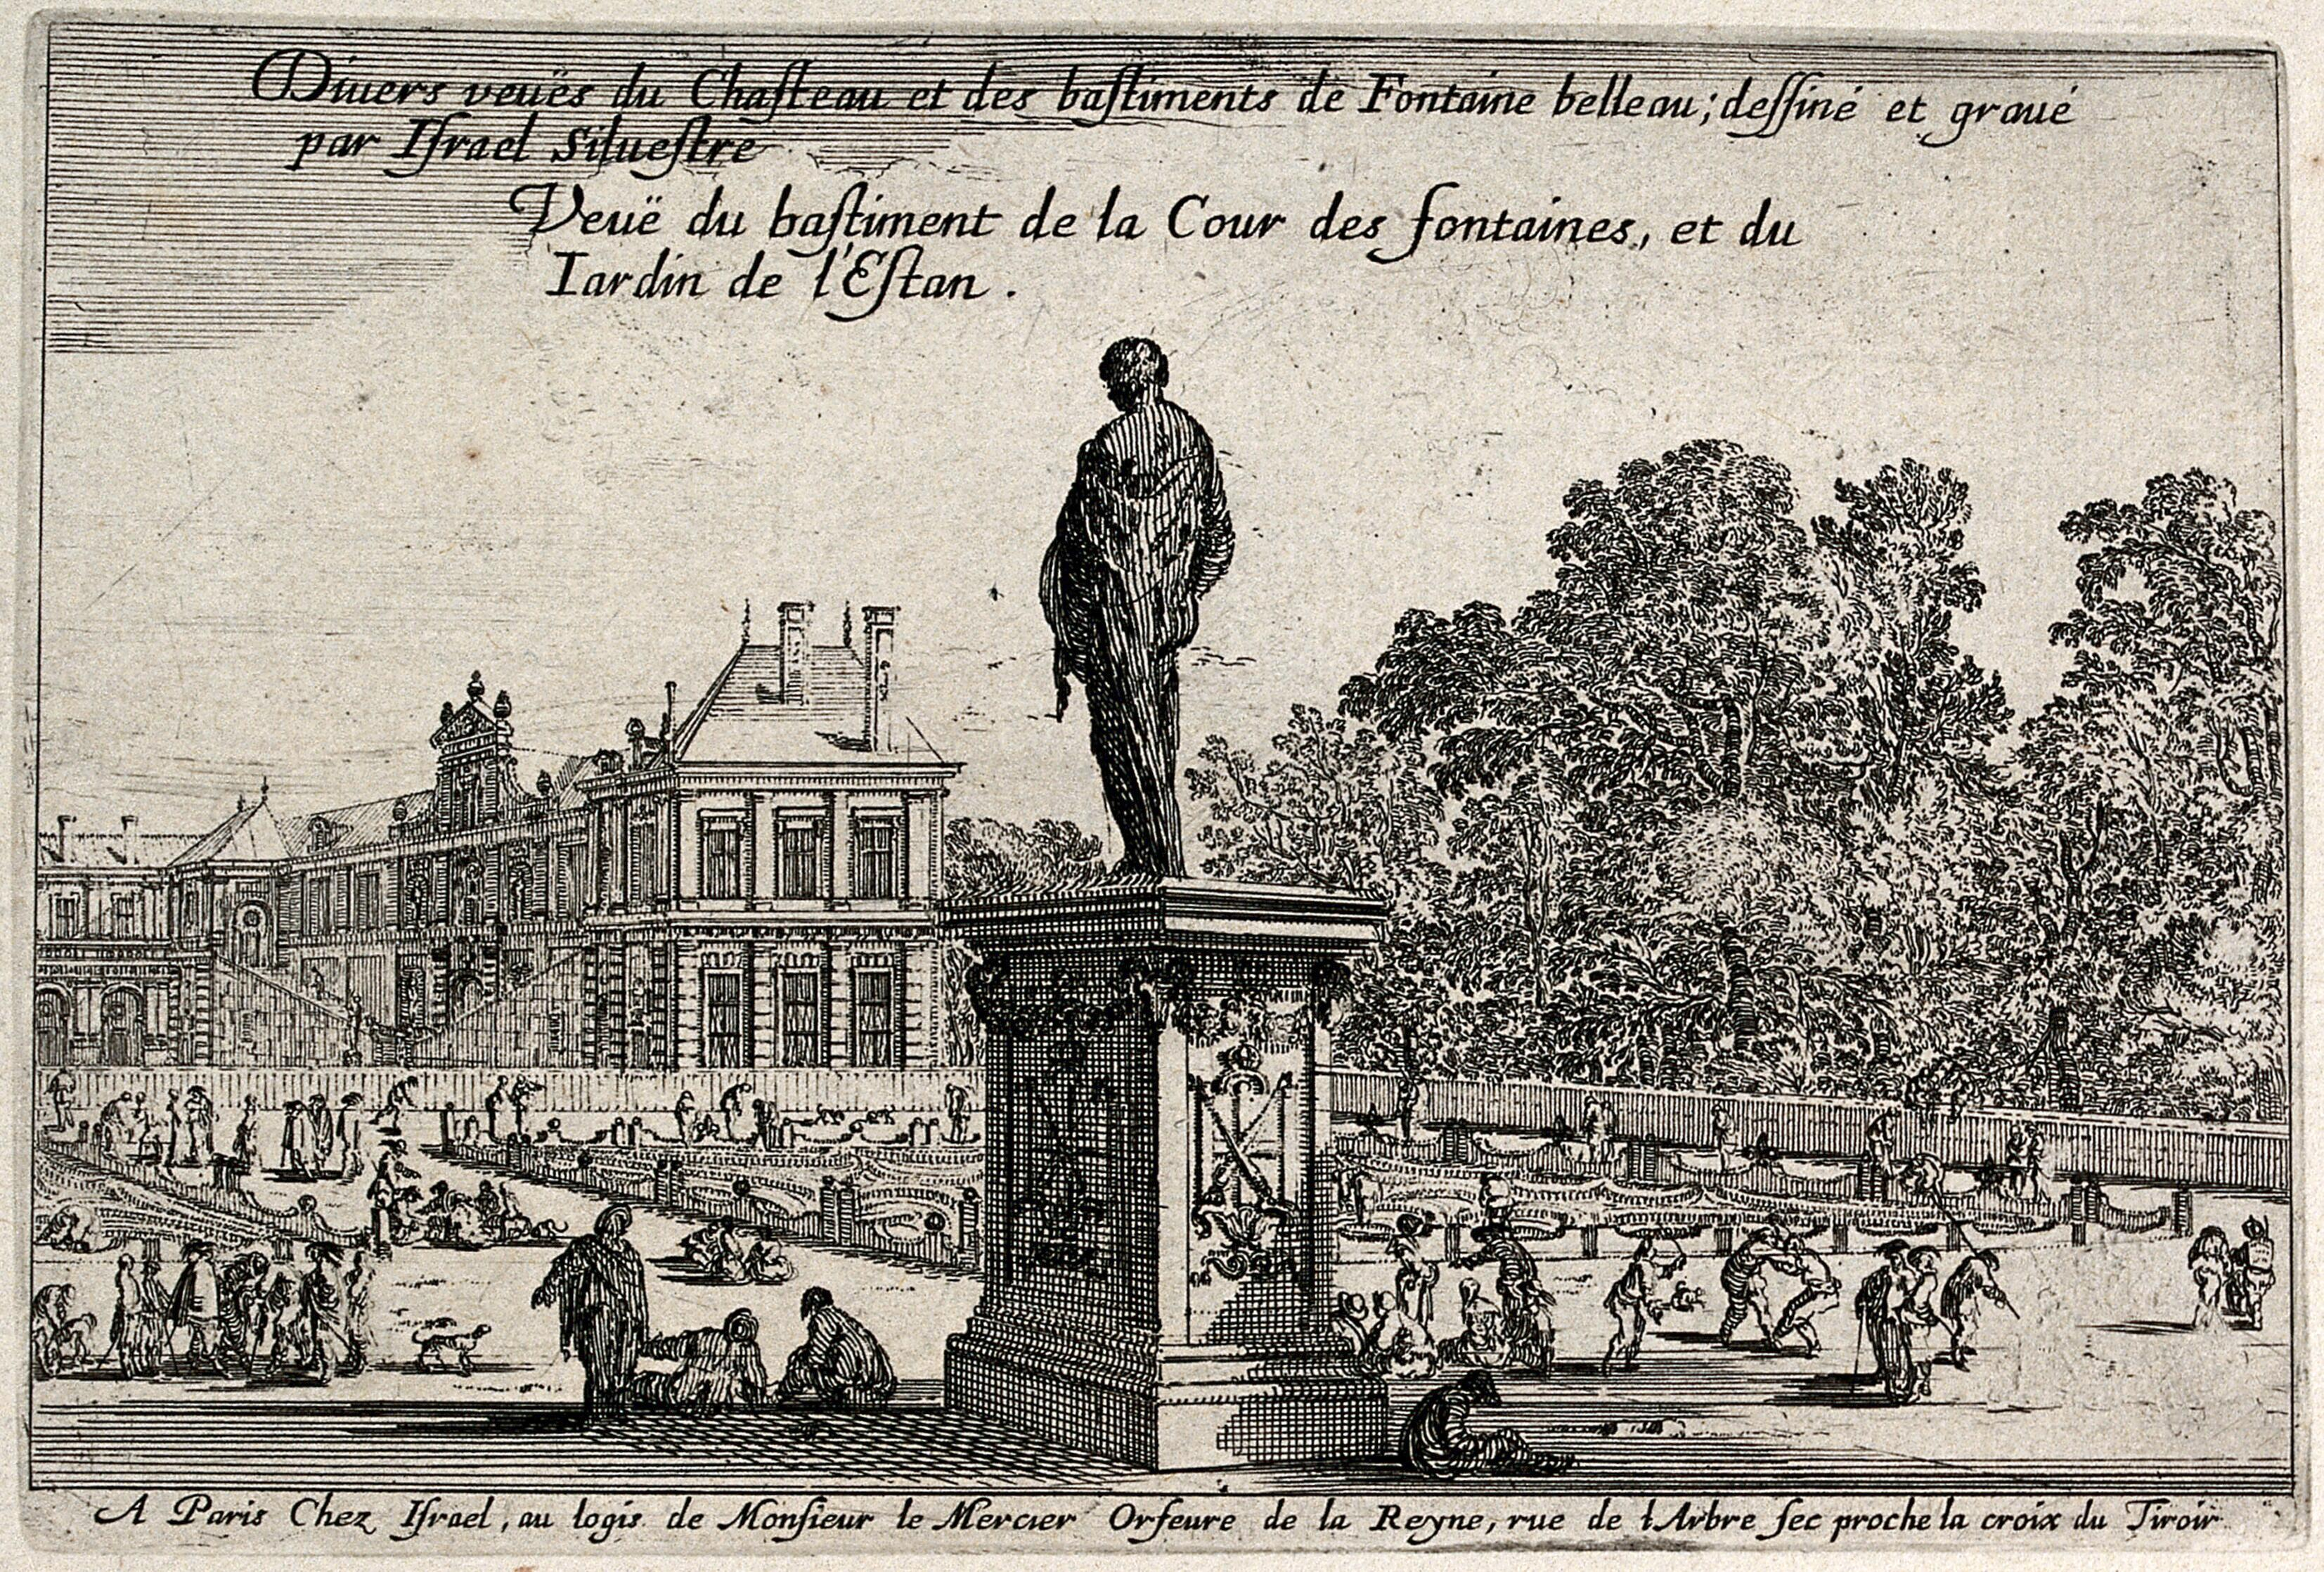 Image De Fontaine De Jardin the cour des fontaines and the jardin de l'estan at